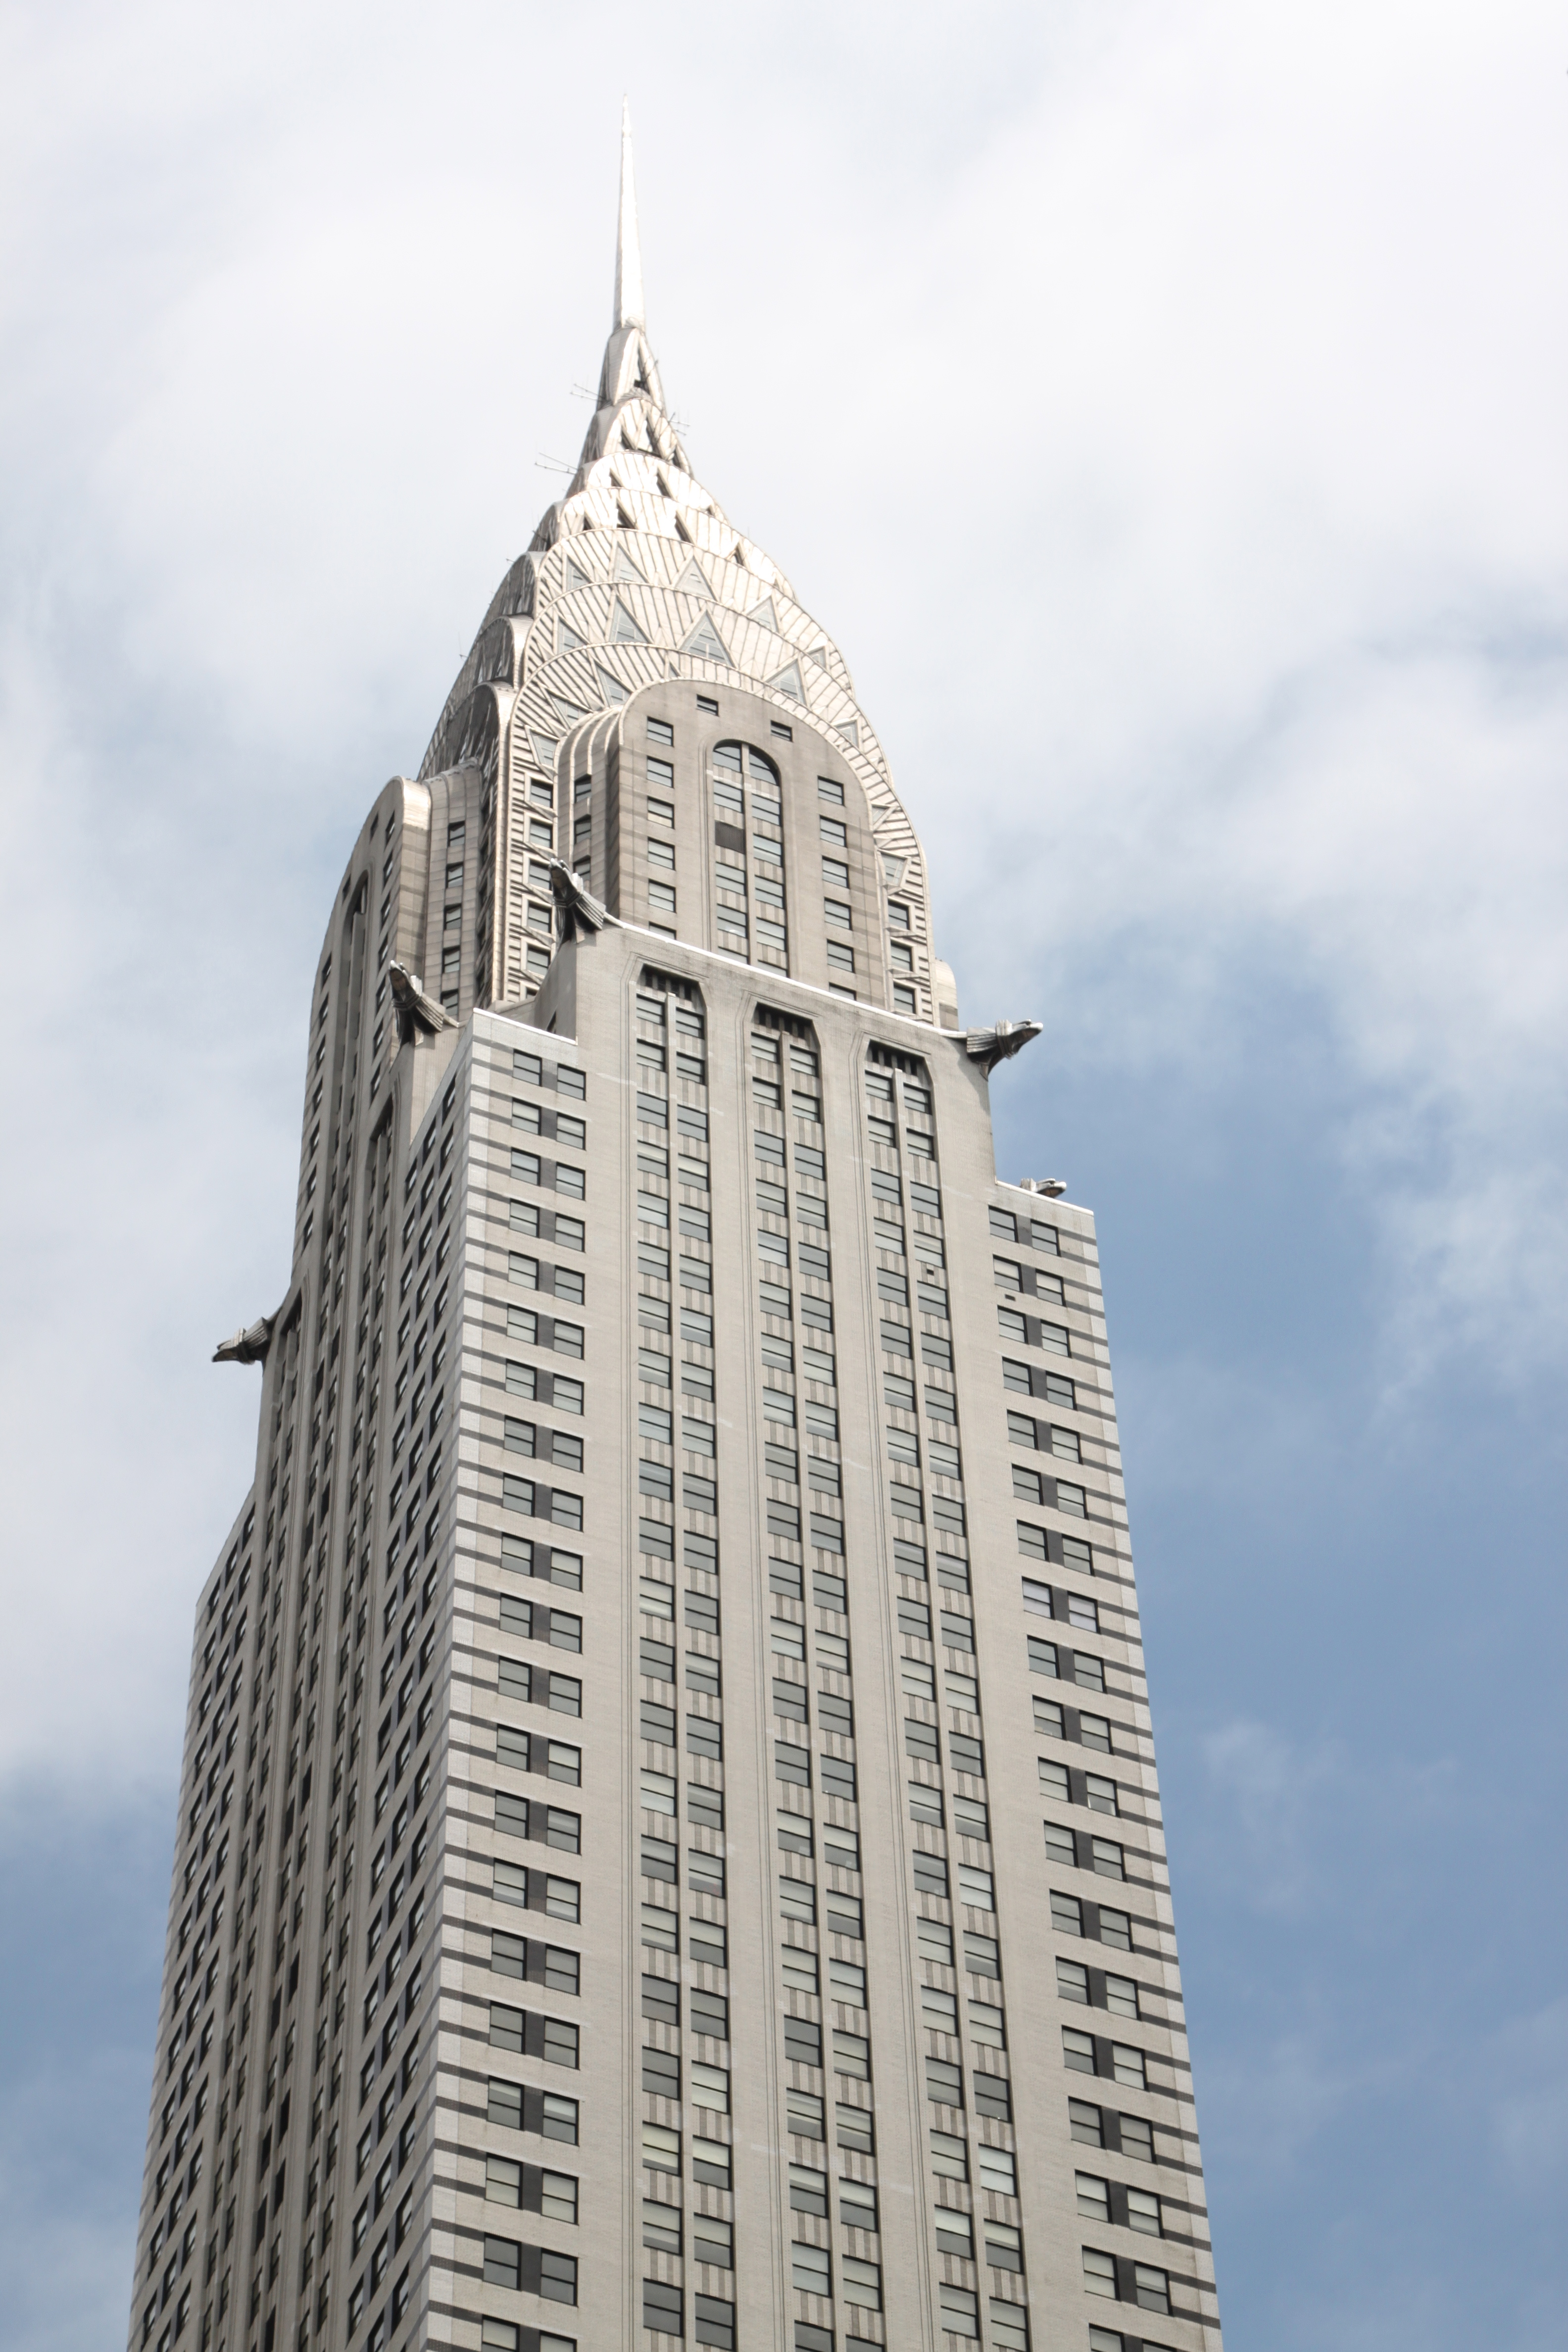 Tallest Building In New York City See What Eye See